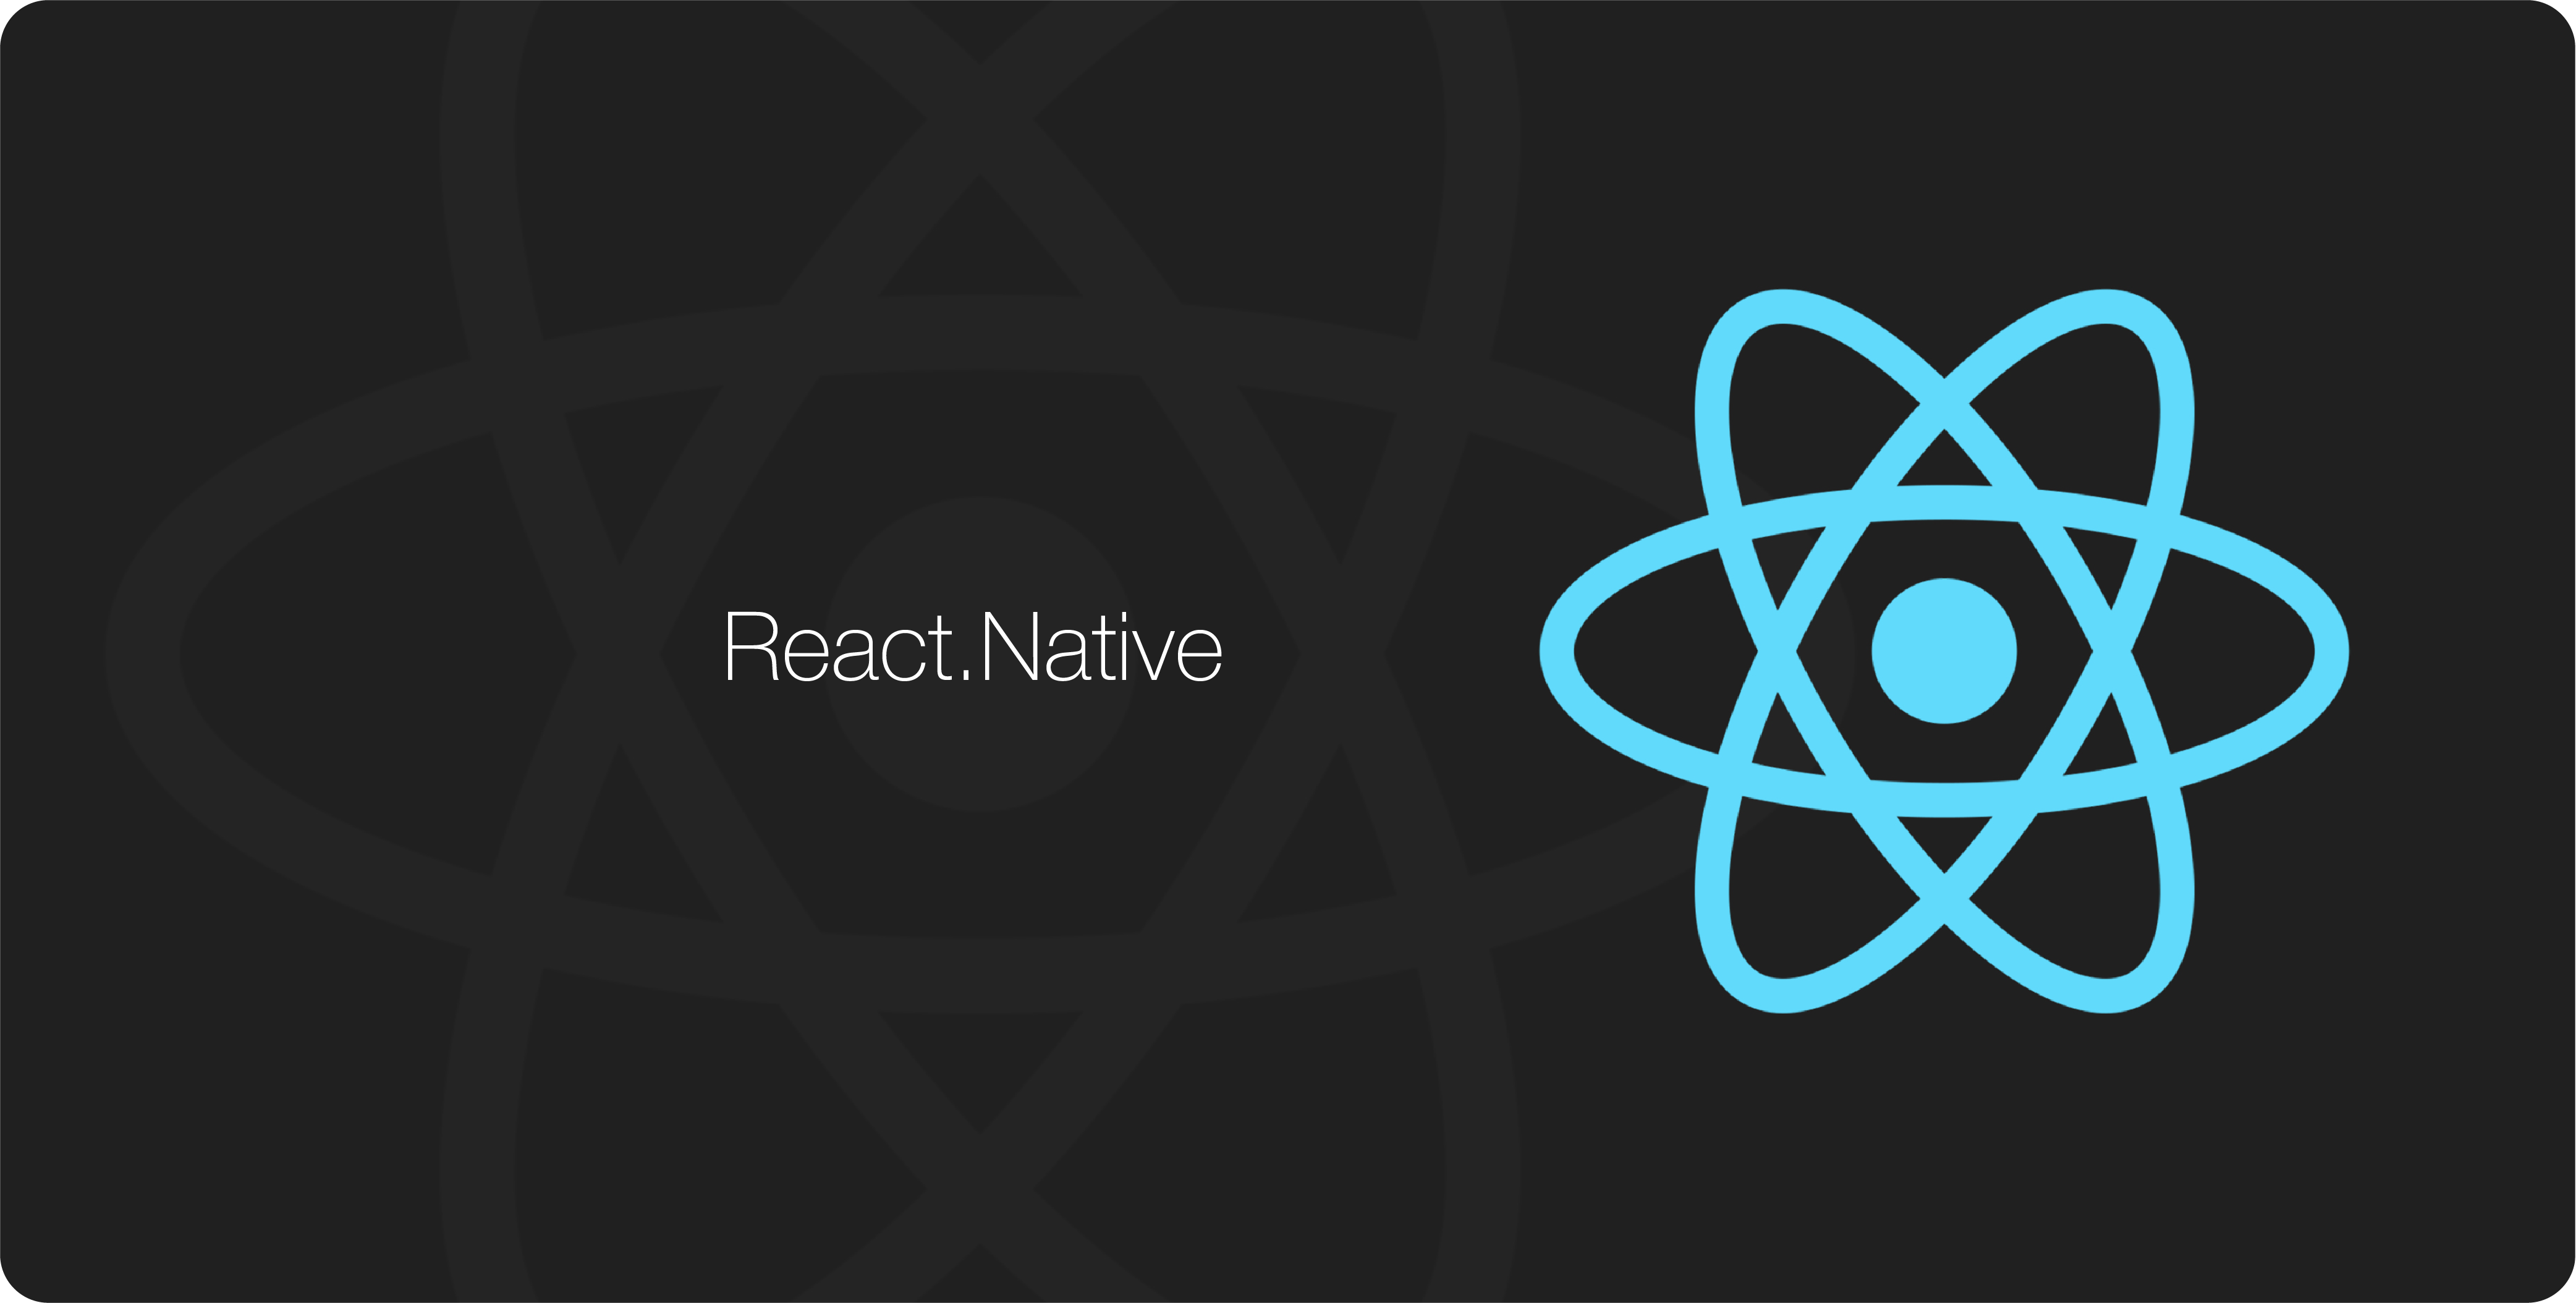 React.Native